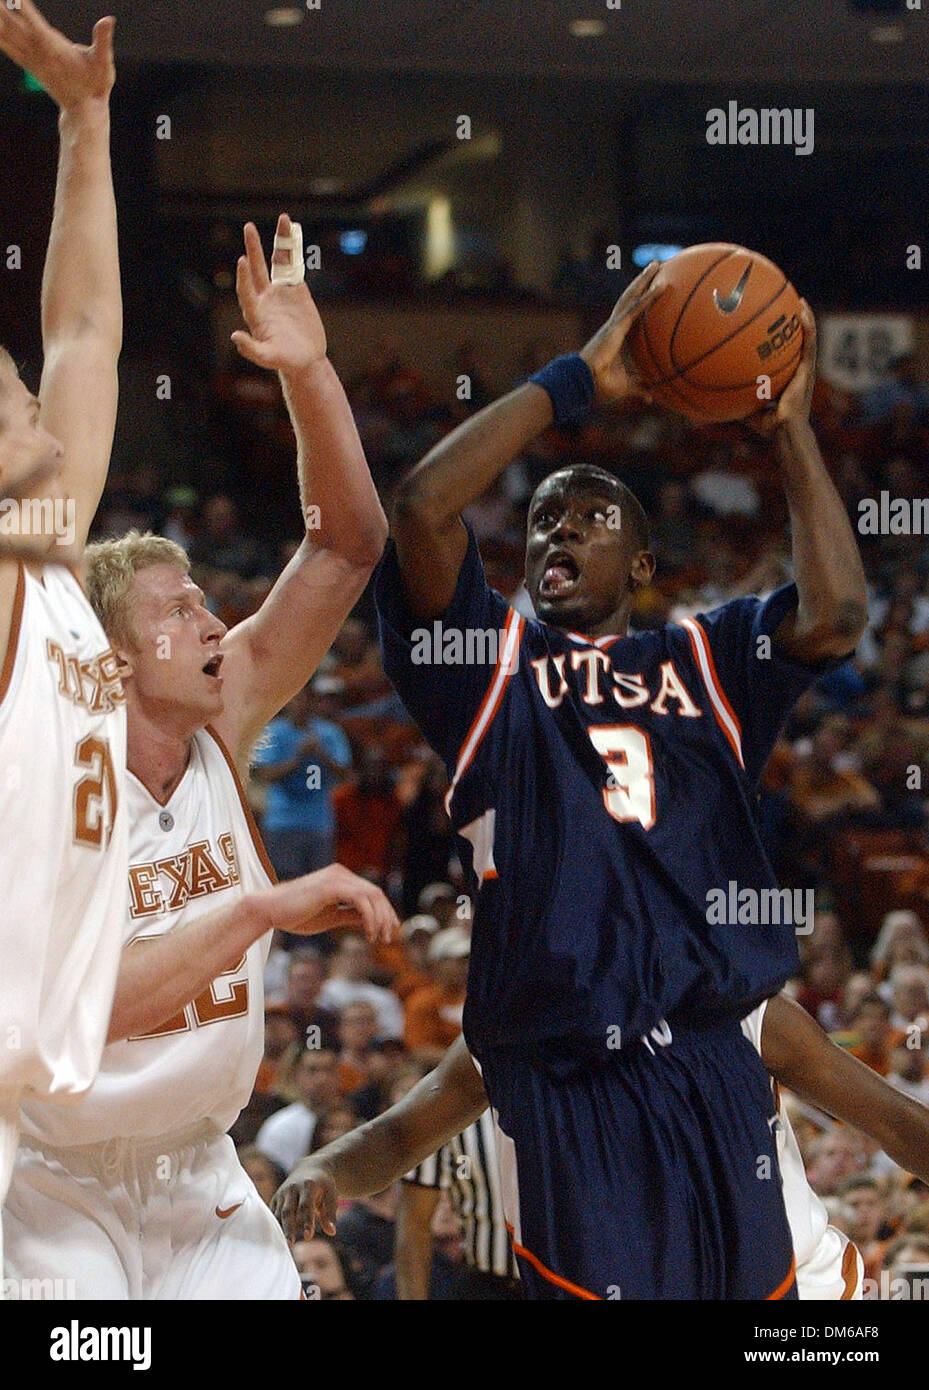 Dec 29, 2004; SAN ANTONIO, TX, USA; NCAA College Basketball: San Antonio's Andre Owens goes for the basket against the Texas Longhorns' Jason Klotz, from left, and Brad Buckman during the first half of their game at The Frank Erwin Center in Austin on Wednesday, December 29, 2004. Lisa Krantz/STAFF - Stock Image